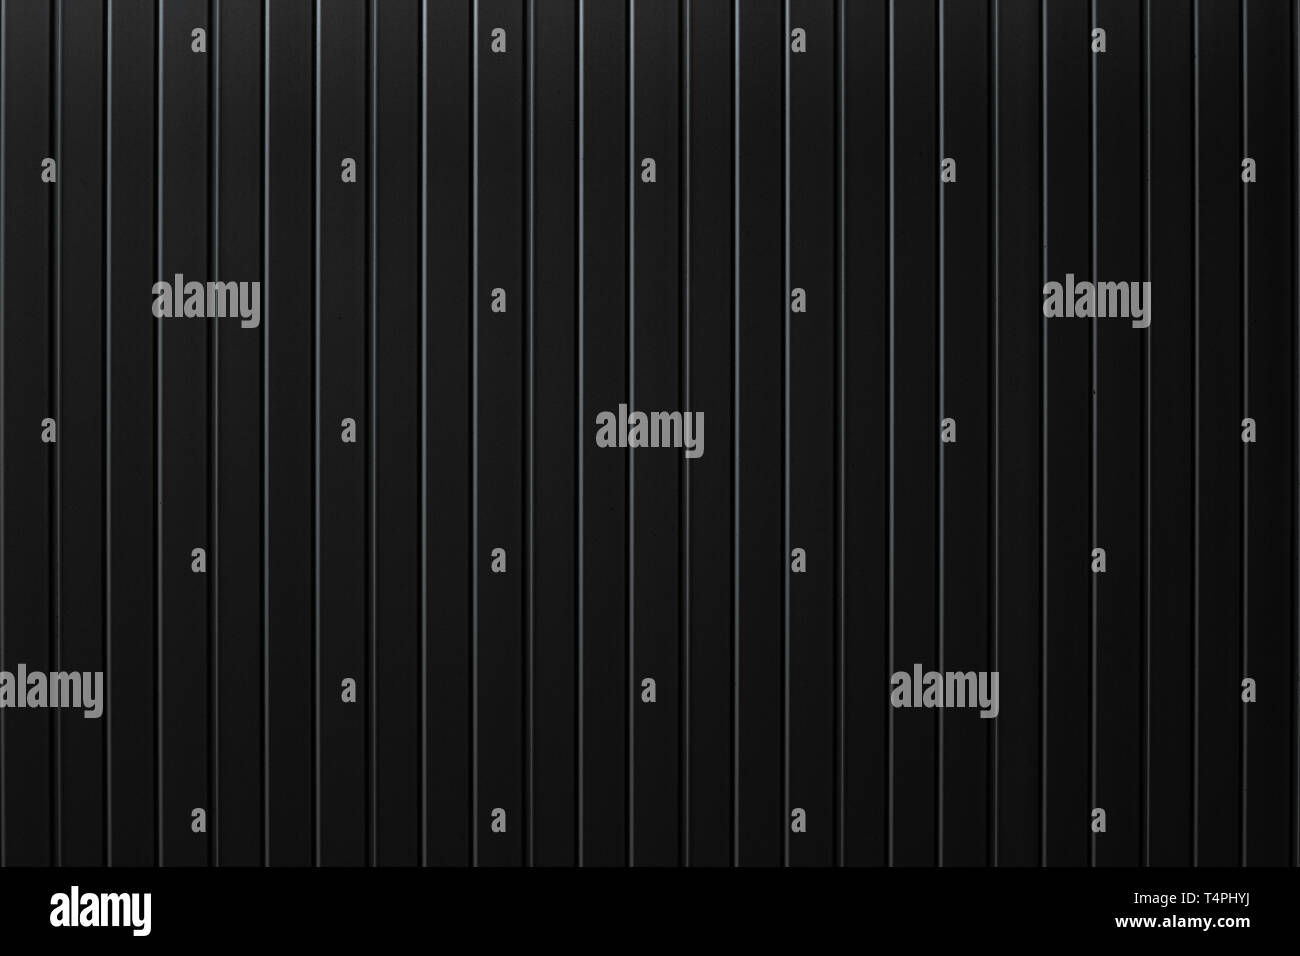 Black metal plate wall, Seamless surface of galvanized steel. Industrial building wall made of corrugated metal sheet, flat background photo texture - Stock Image